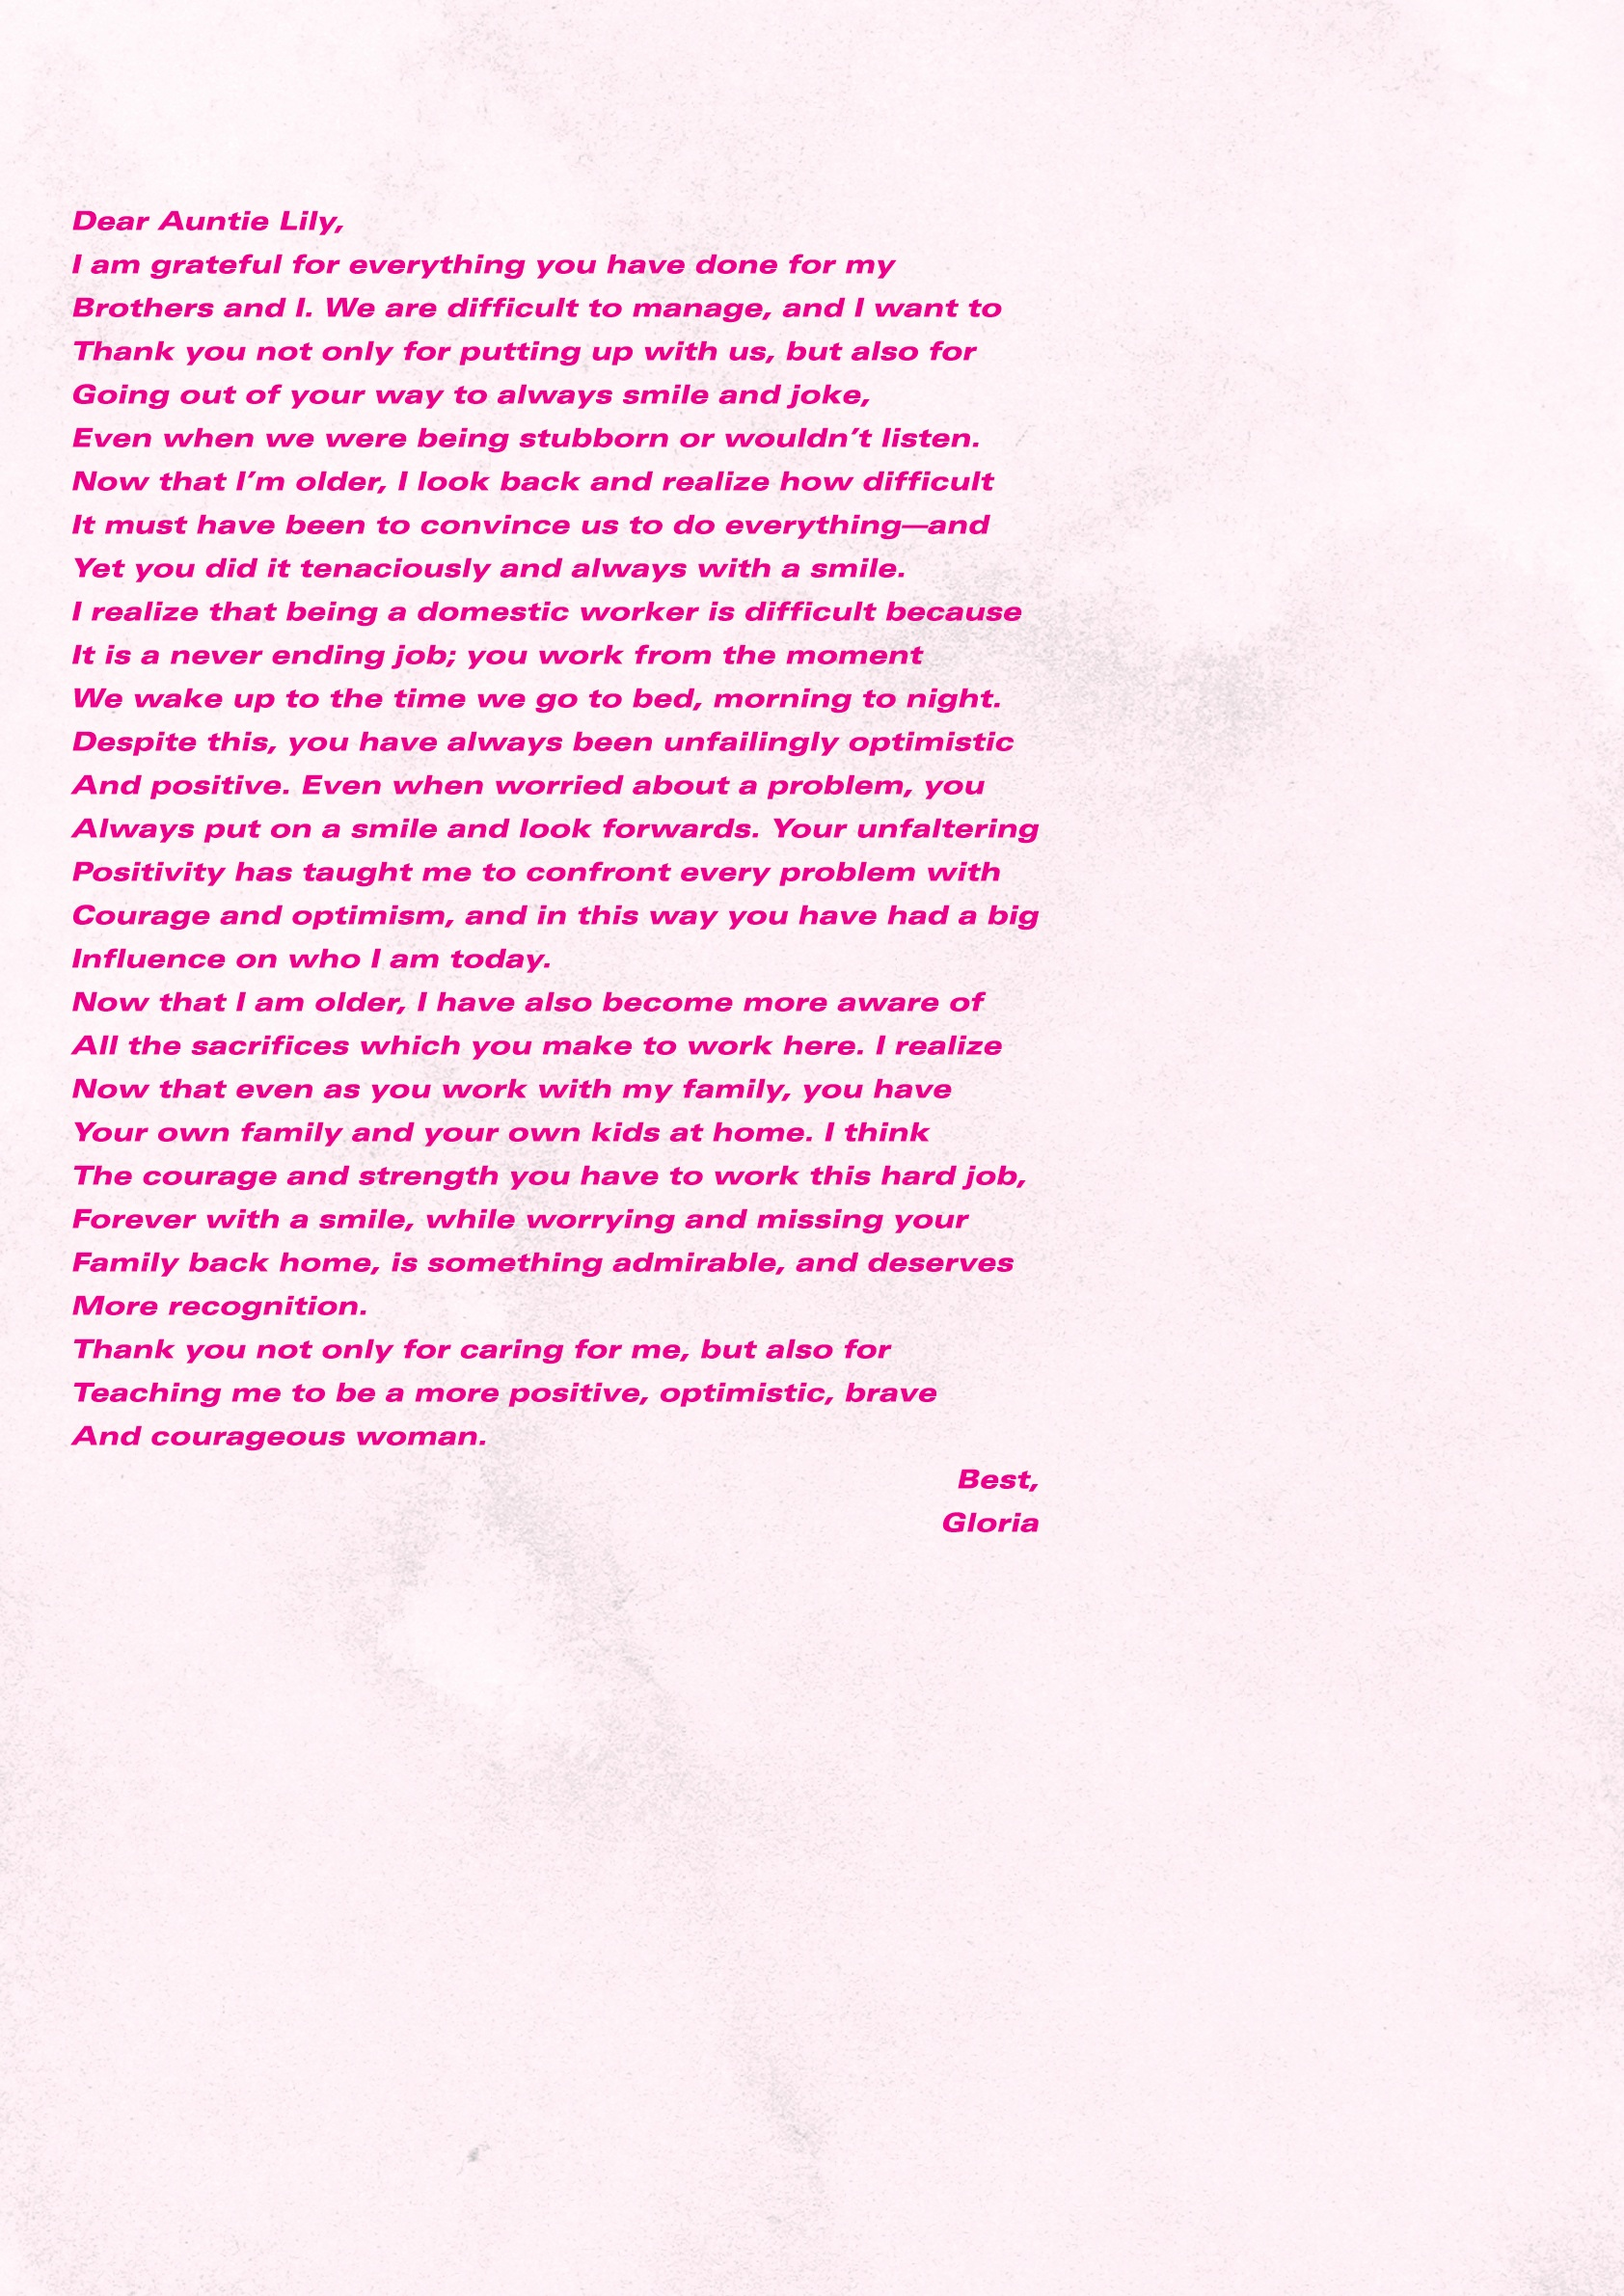 Letter by Gloria | Design: Rowena Chan